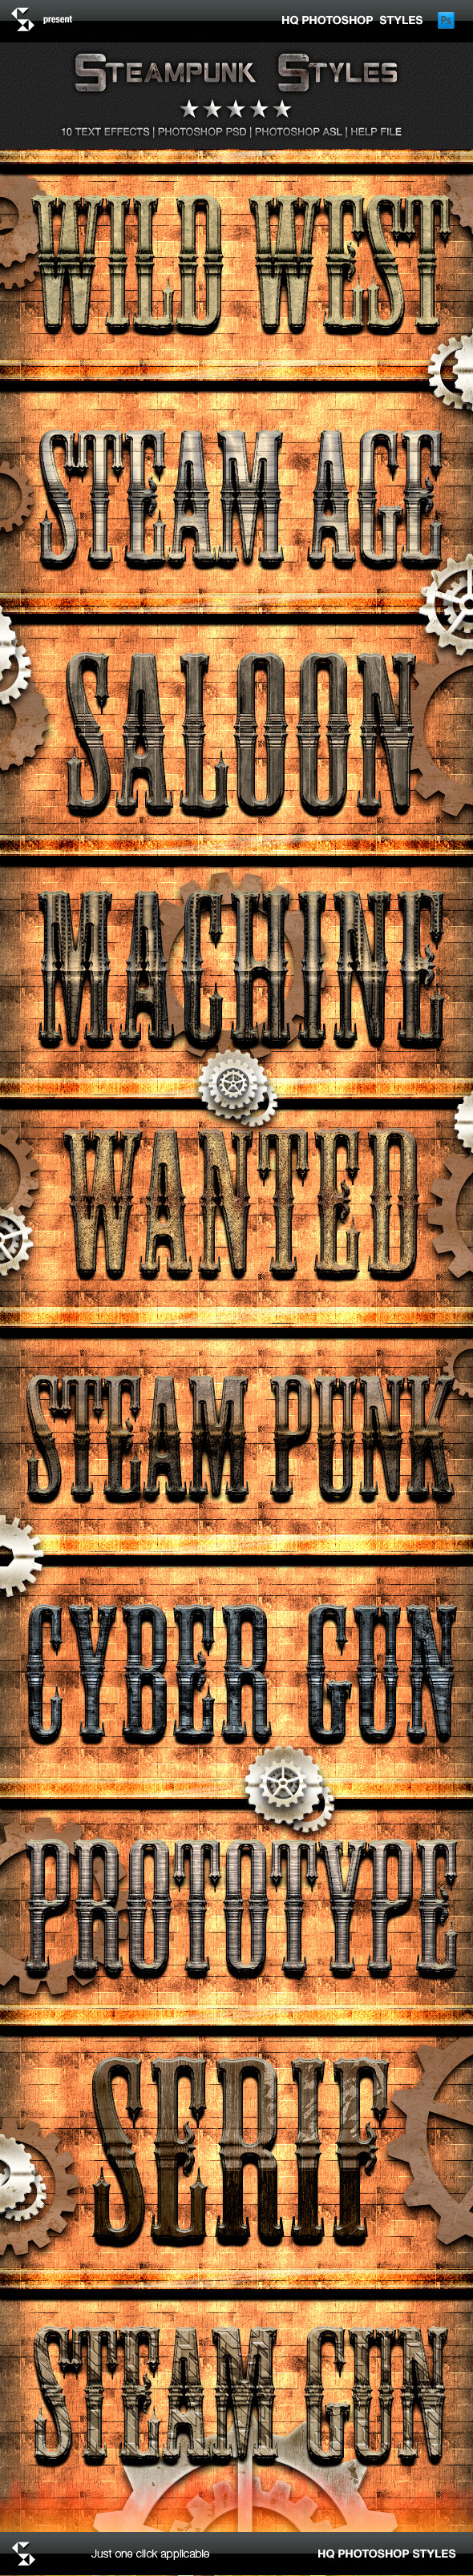 Action Fantasy Styles - Steampunk - Text Effects Styles